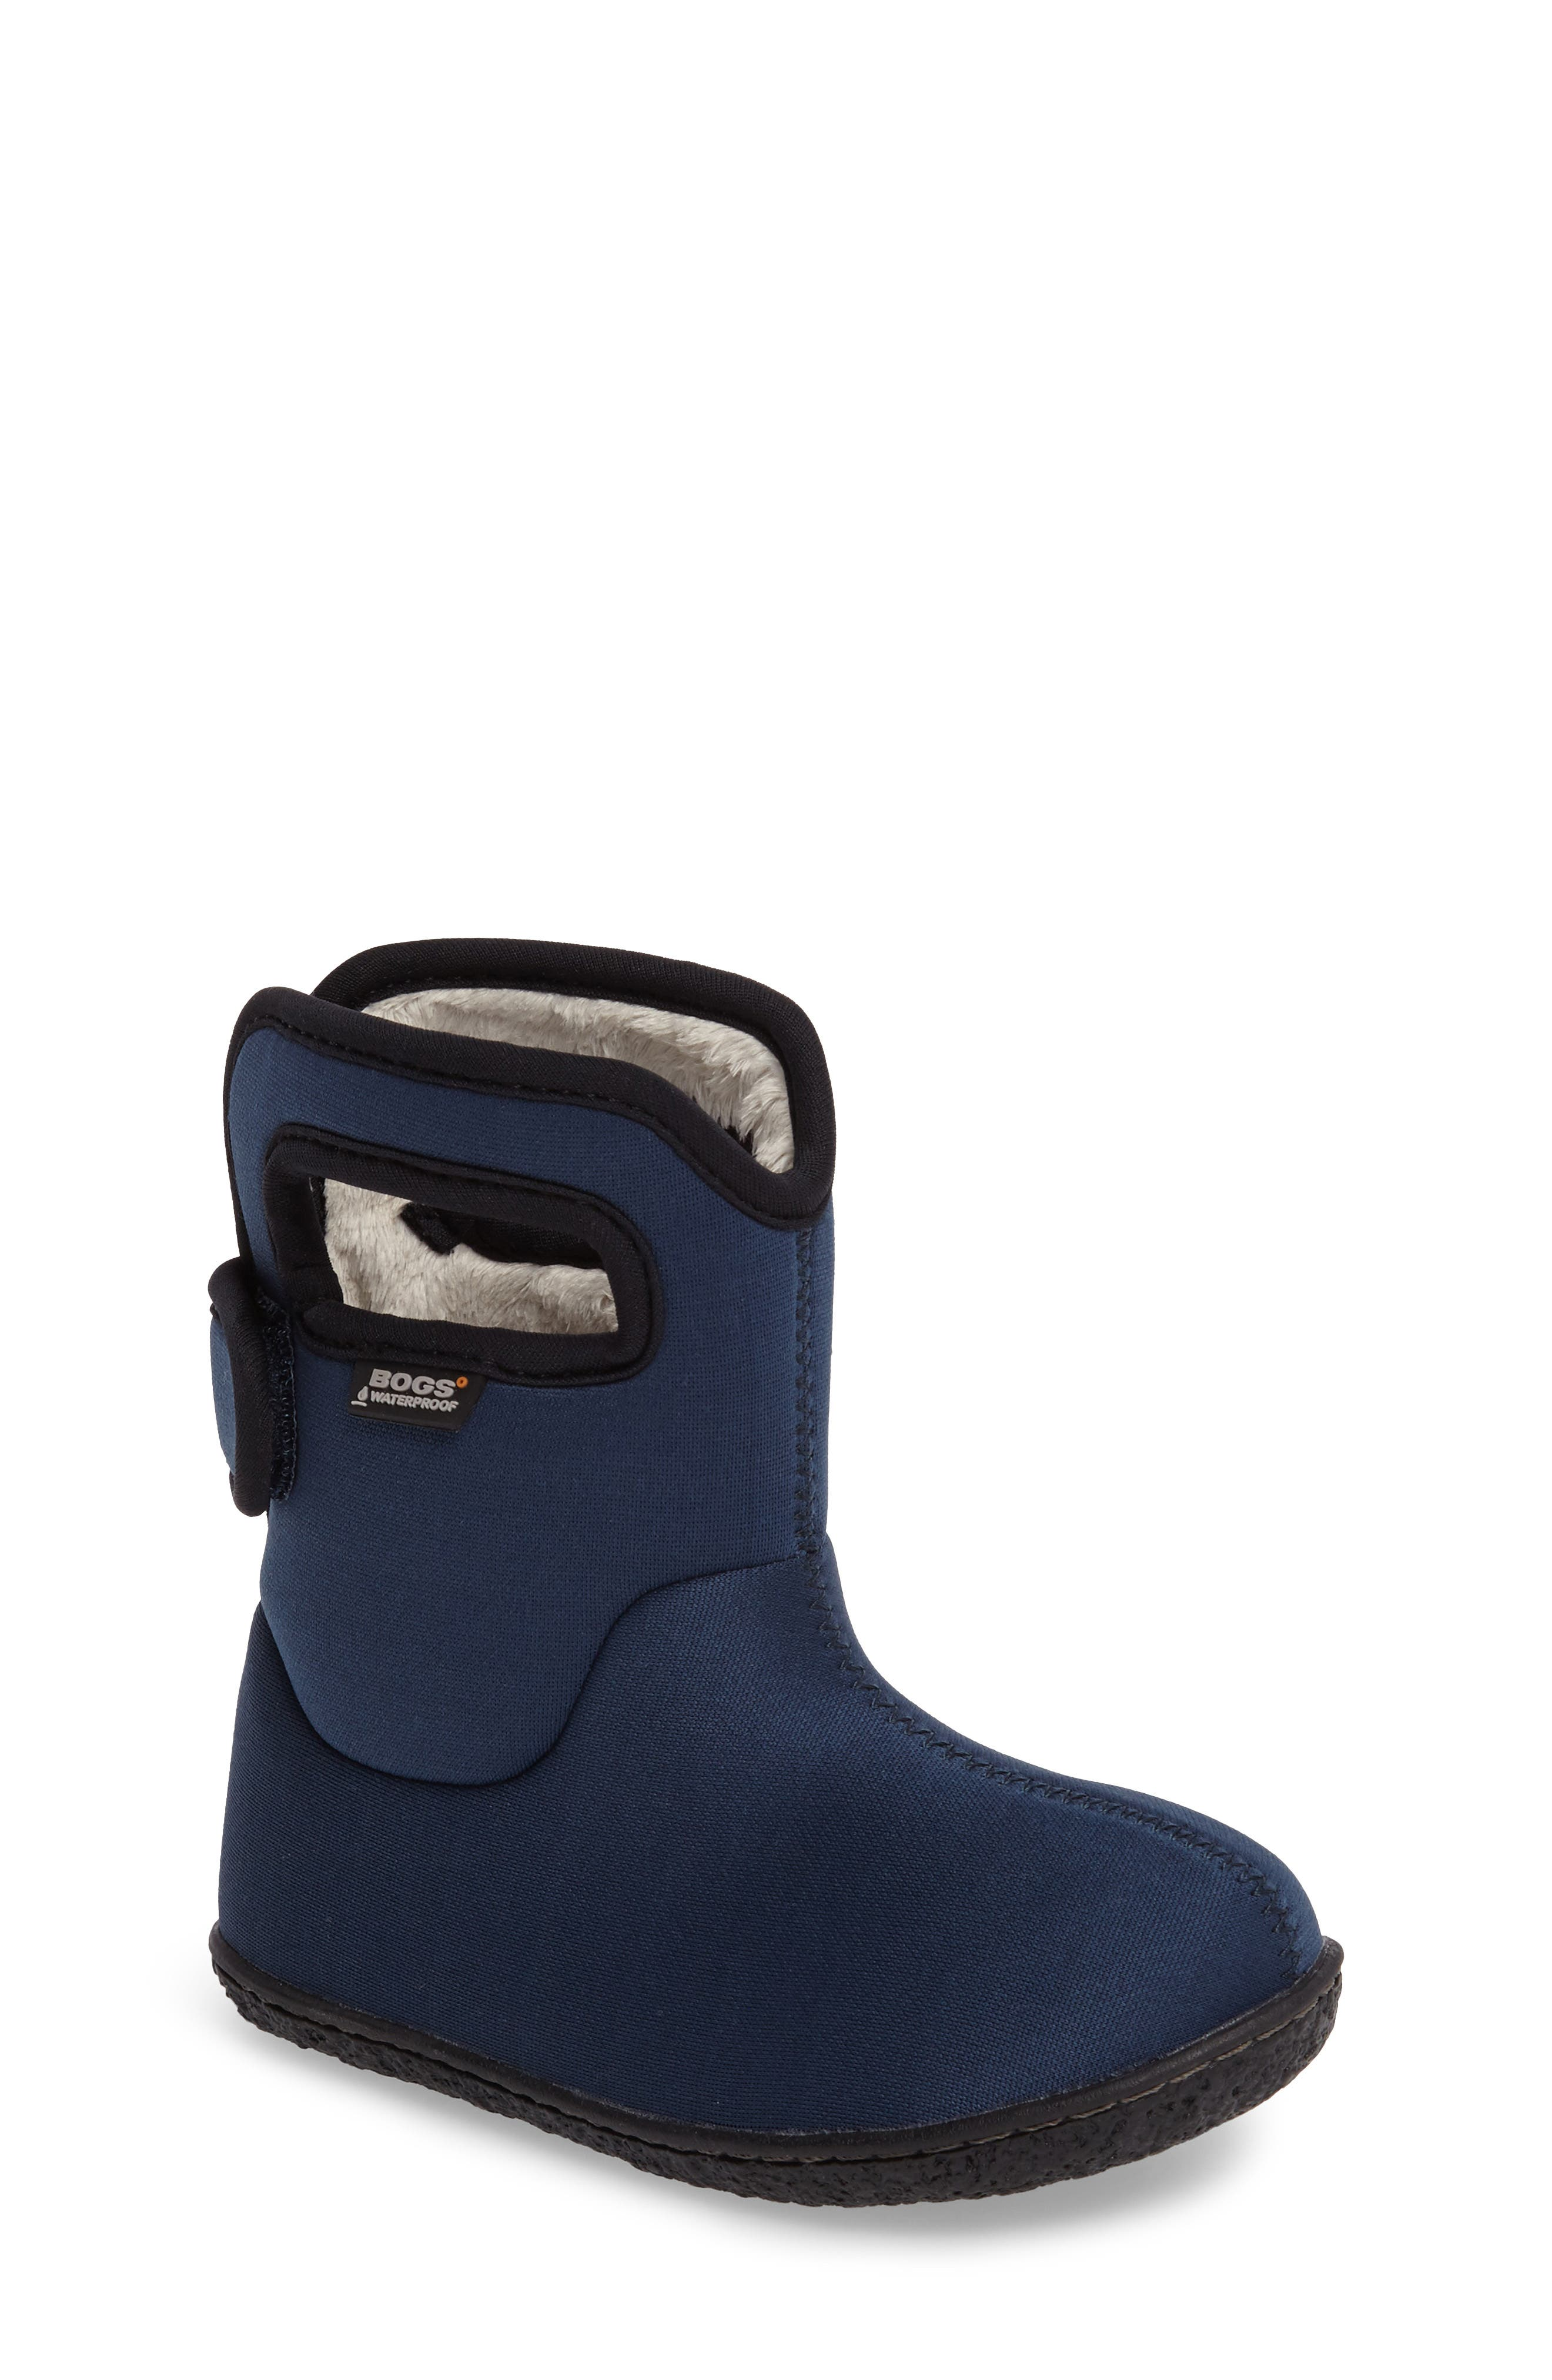 Alternate Image 1 Selected - Bogs Classic Solid Insulated Waterproof Rain Boot (Baby, Walker & Toddler)